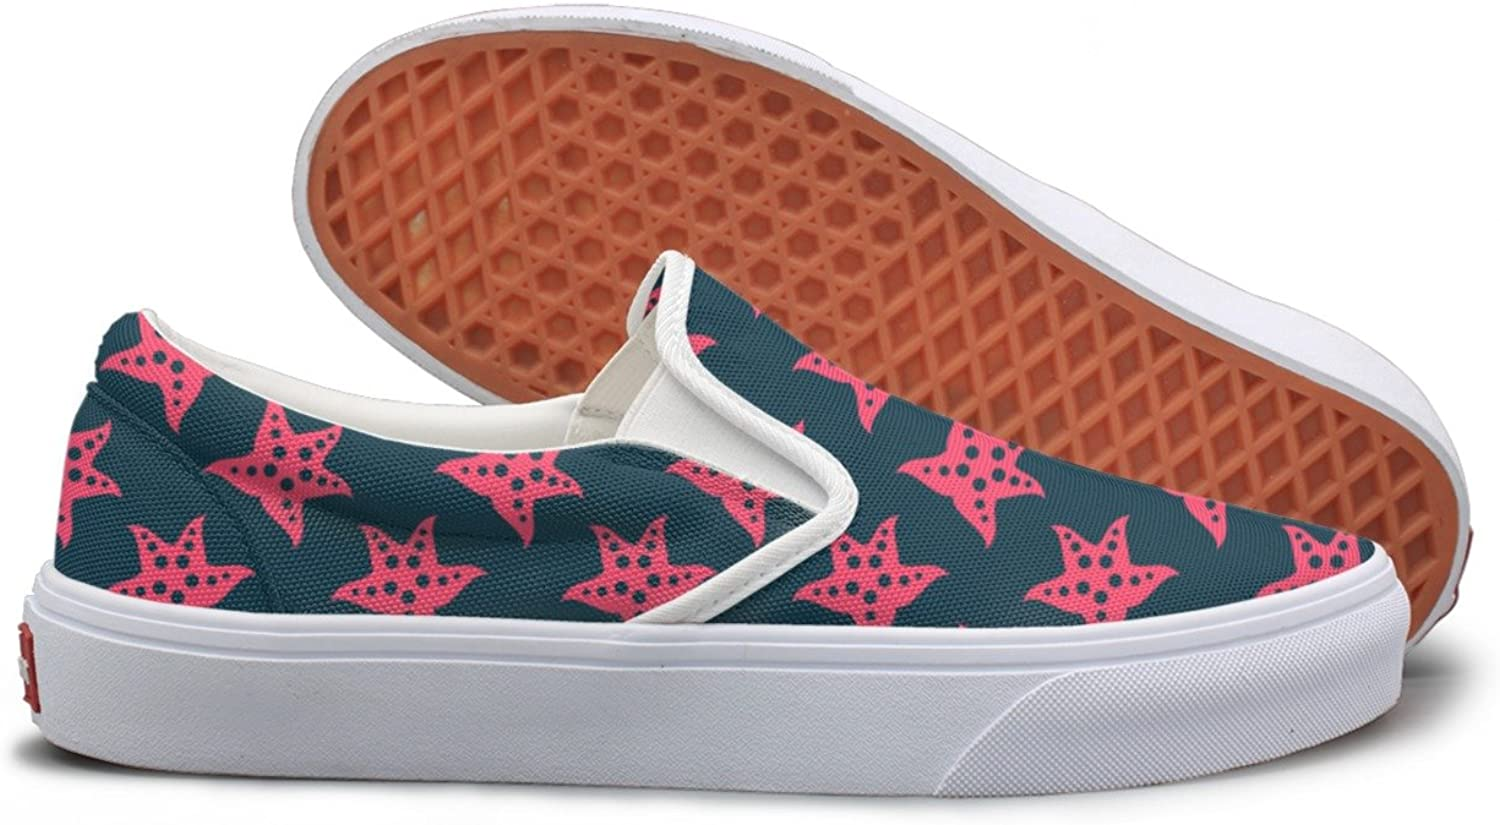 SEERTED Big Pink Coral Starfish Comfortable Sneakers for Standing All Day